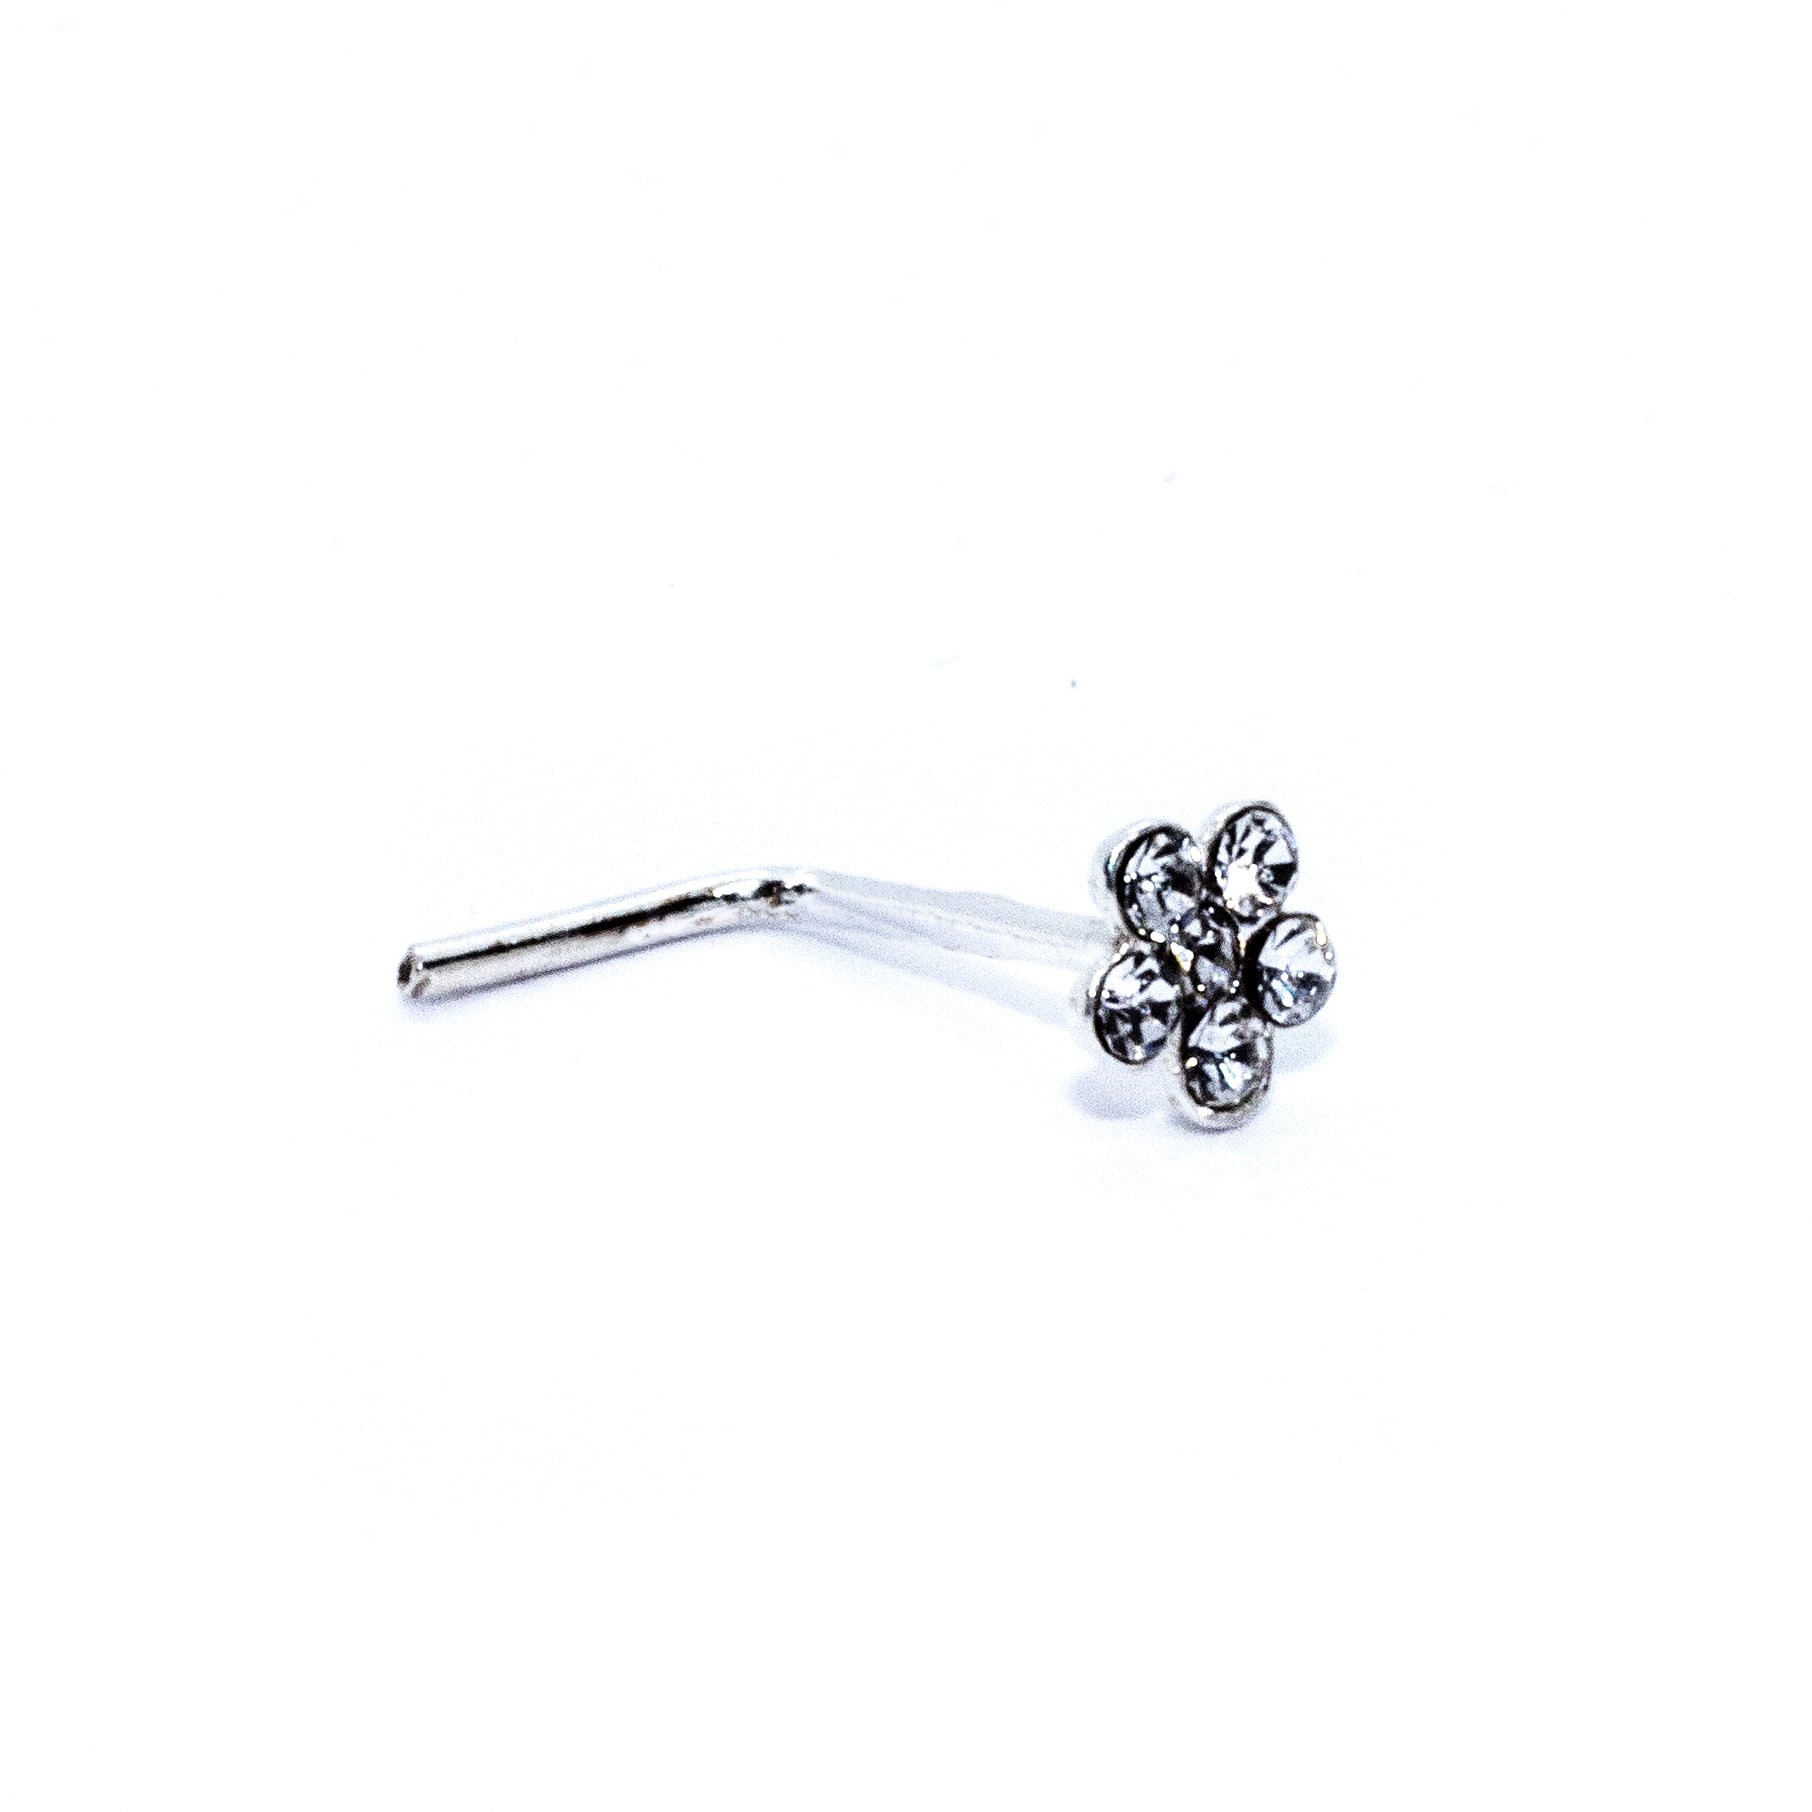 Crystal flower nose stud in sterling silver